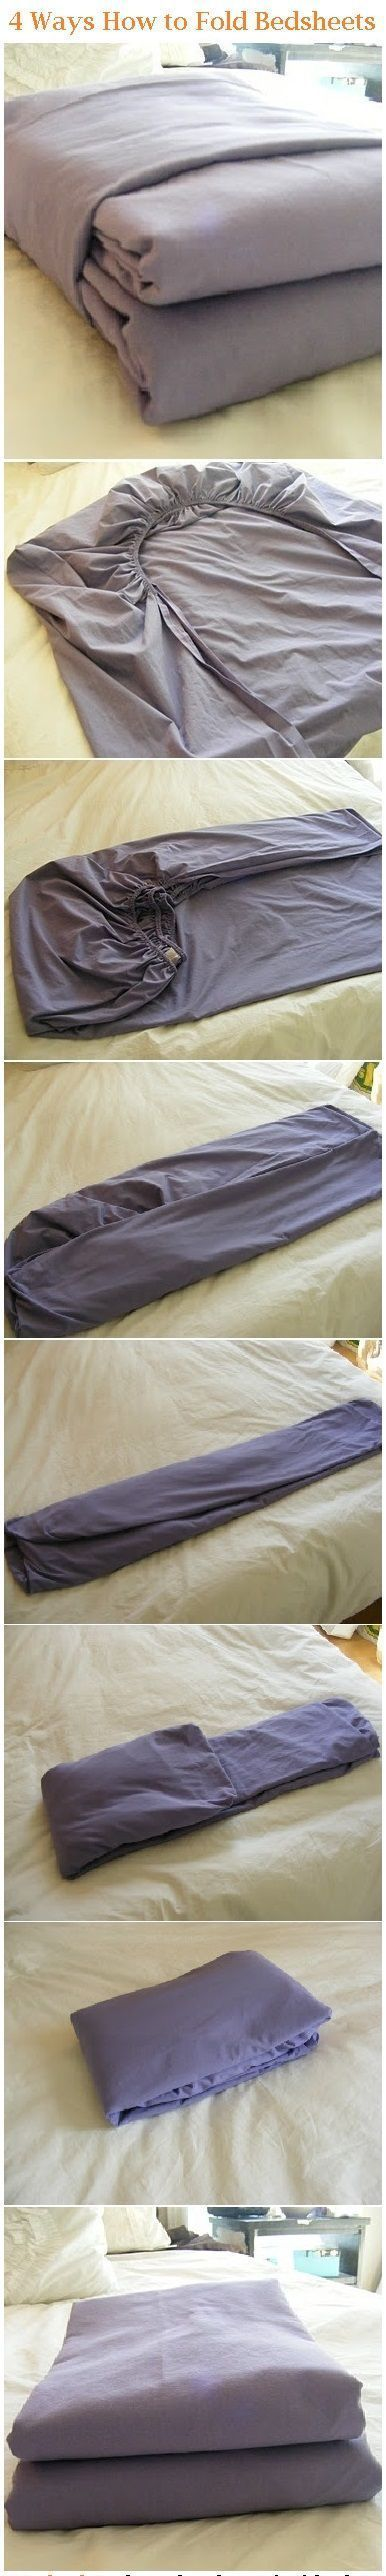 How to fold fitted sheets. Check my video on youtube. I was the most undomesticated person you could find, and if I can do it, you will too!